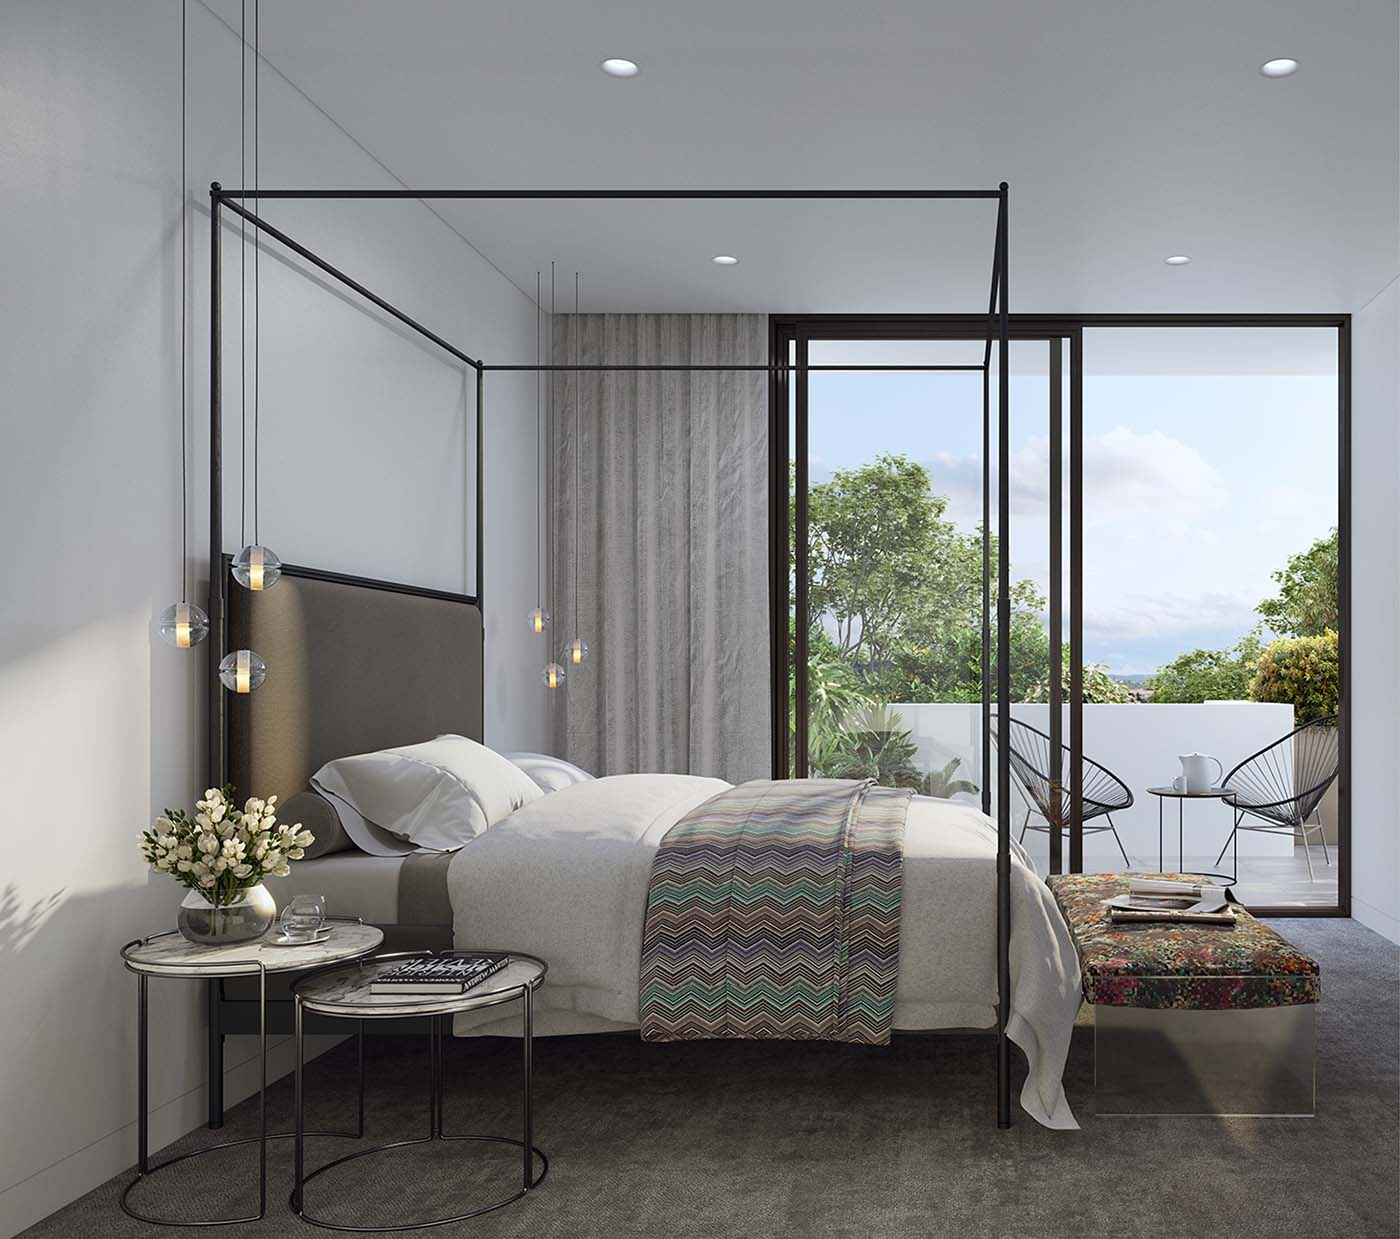 bedroom with four-poster bed and a balcony